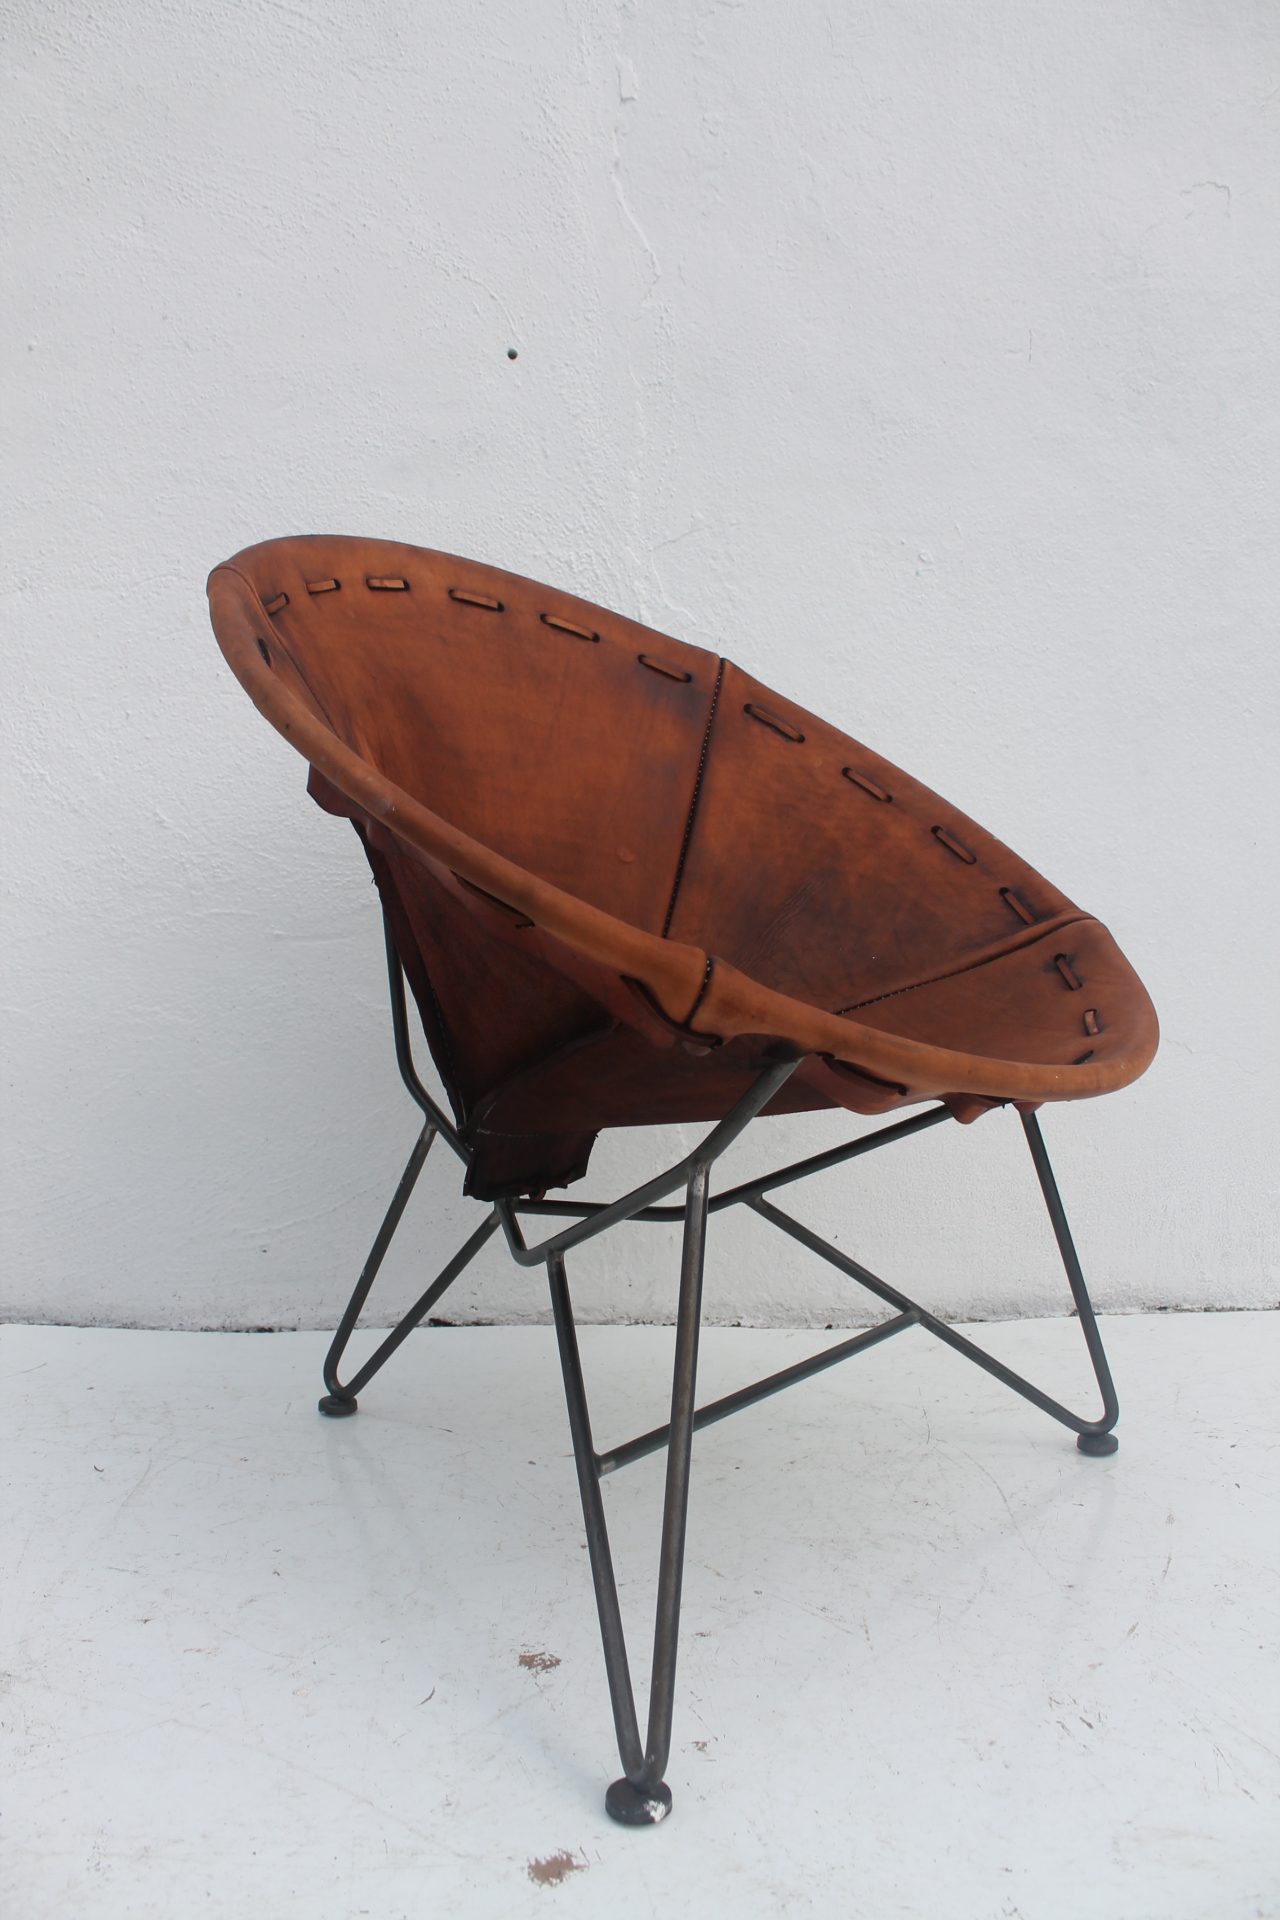 Acapulco Chair By Garza Marfa Saddle Leather Oval Chair With Stainless  Steel Frame. Can Be